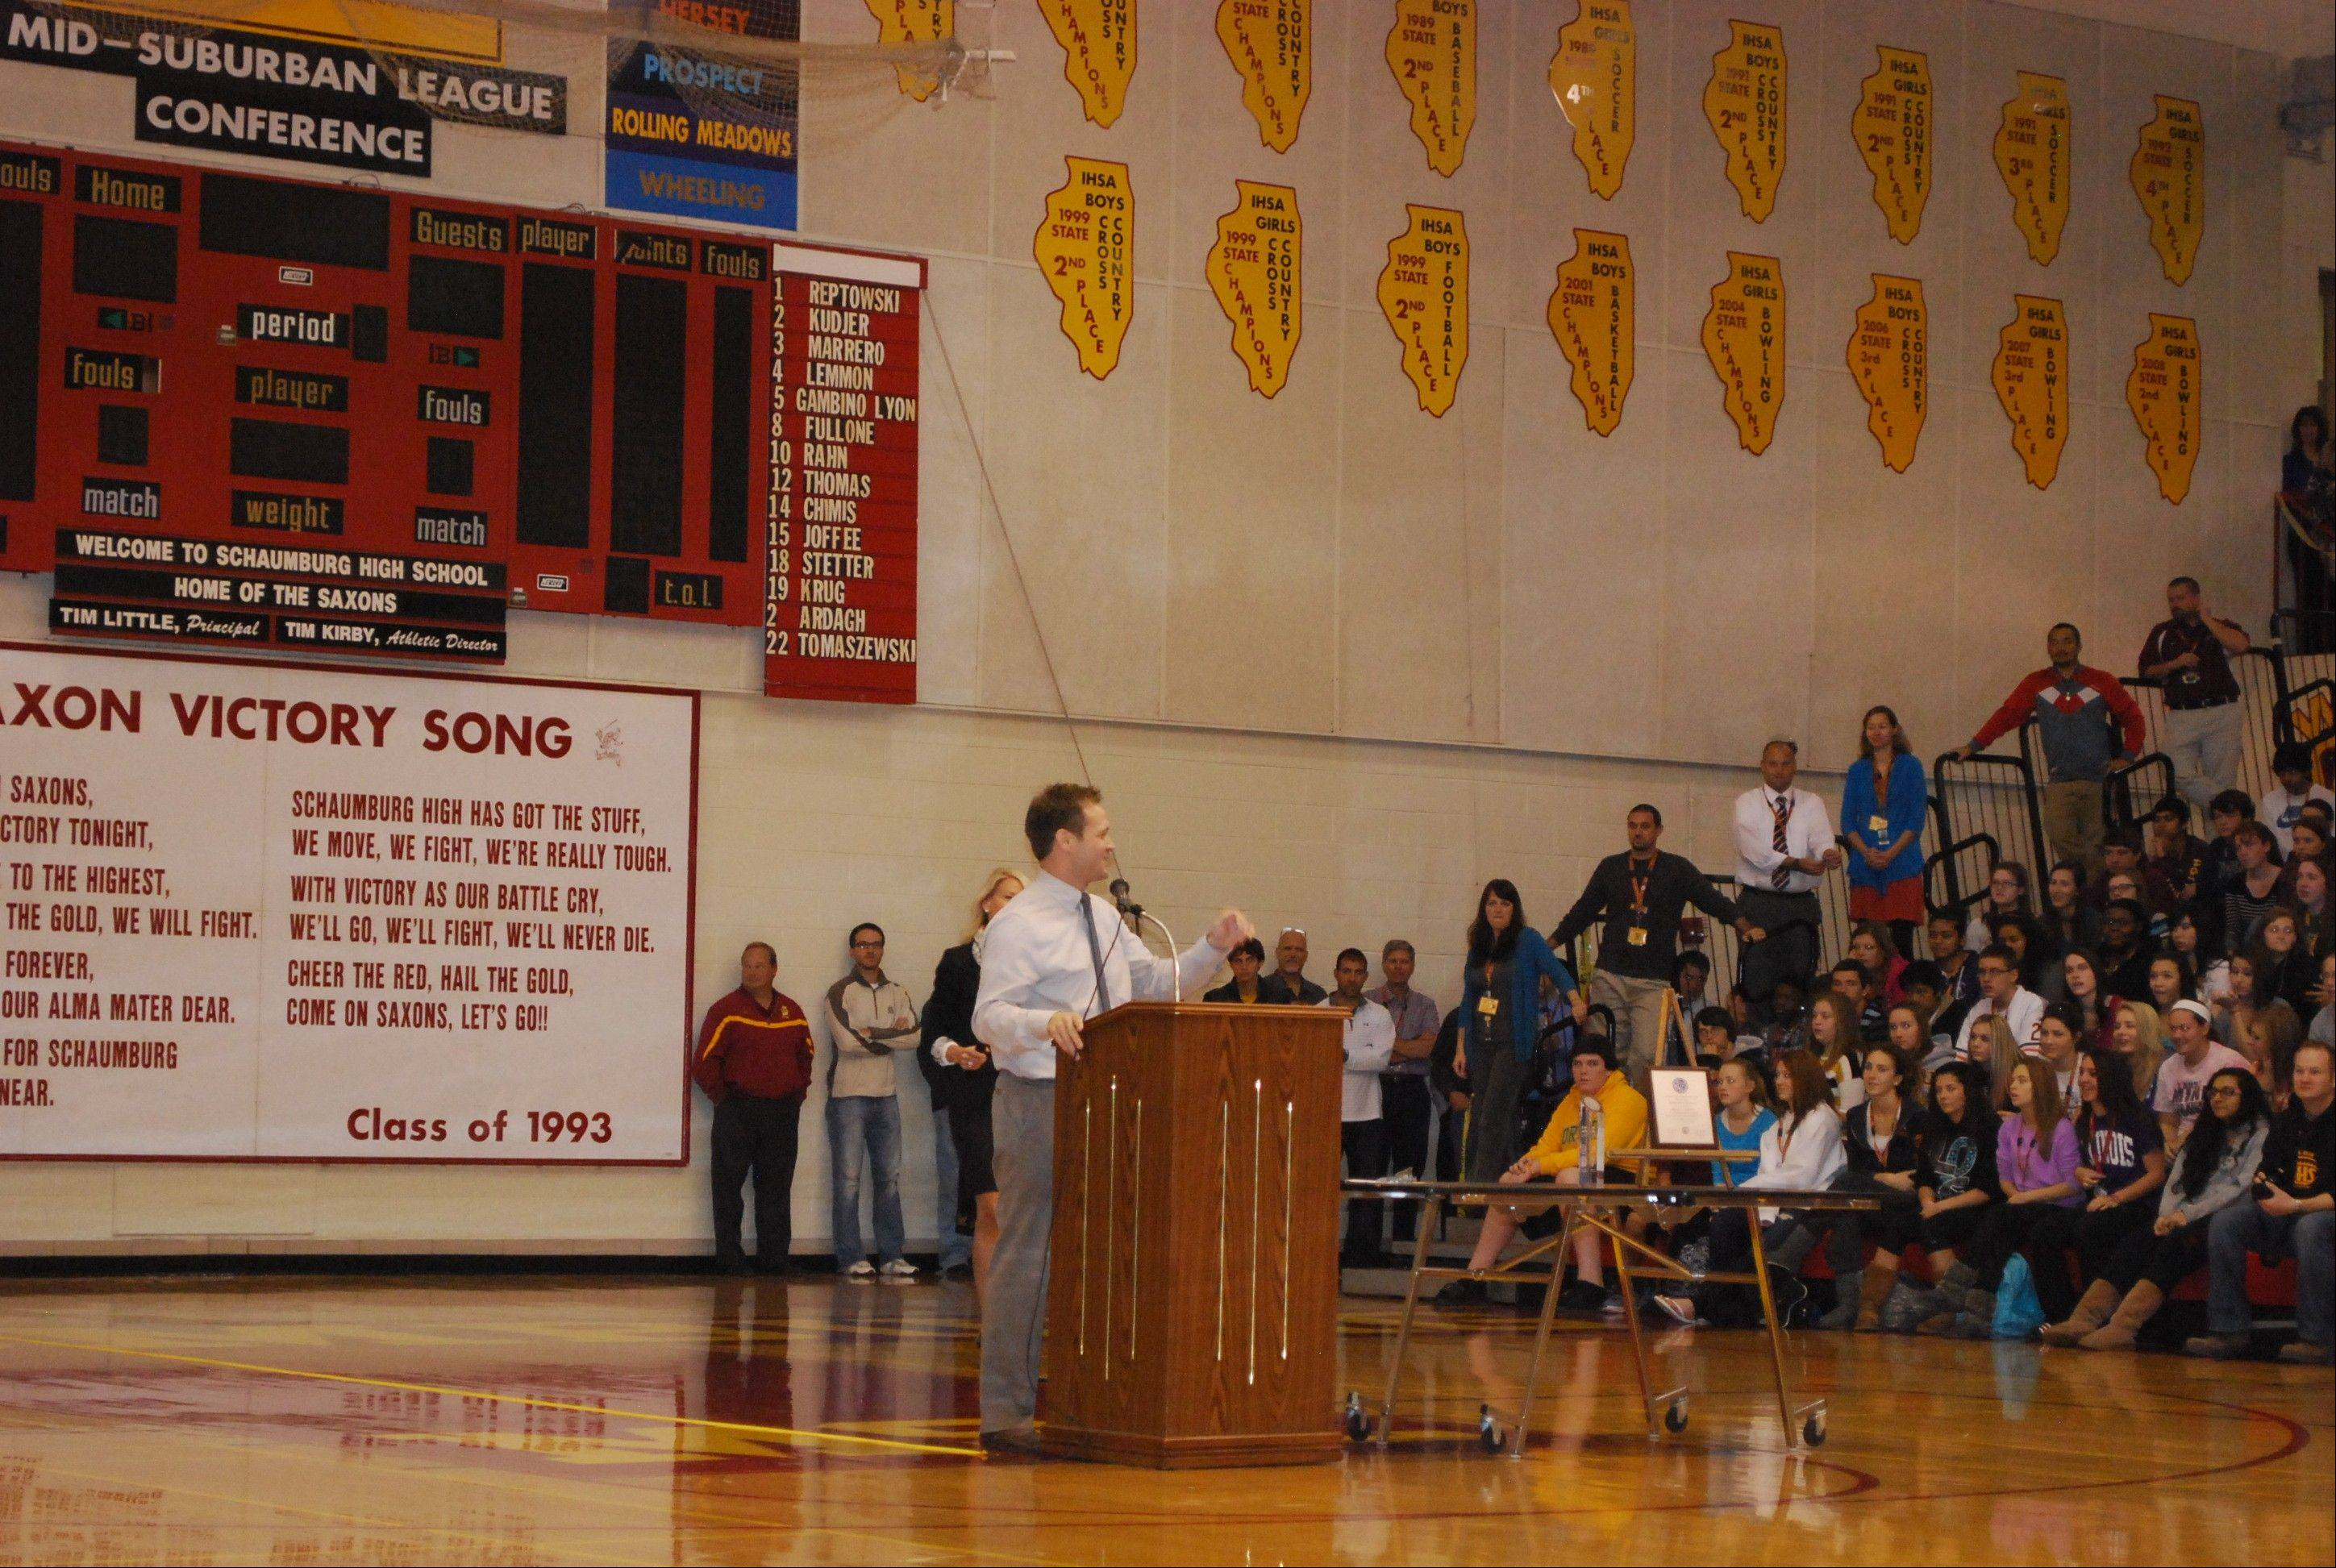 Brian Curtin addresses Schaumburg High School students and staff after being named the 2012-2013 Illinois Teacher of the Year.